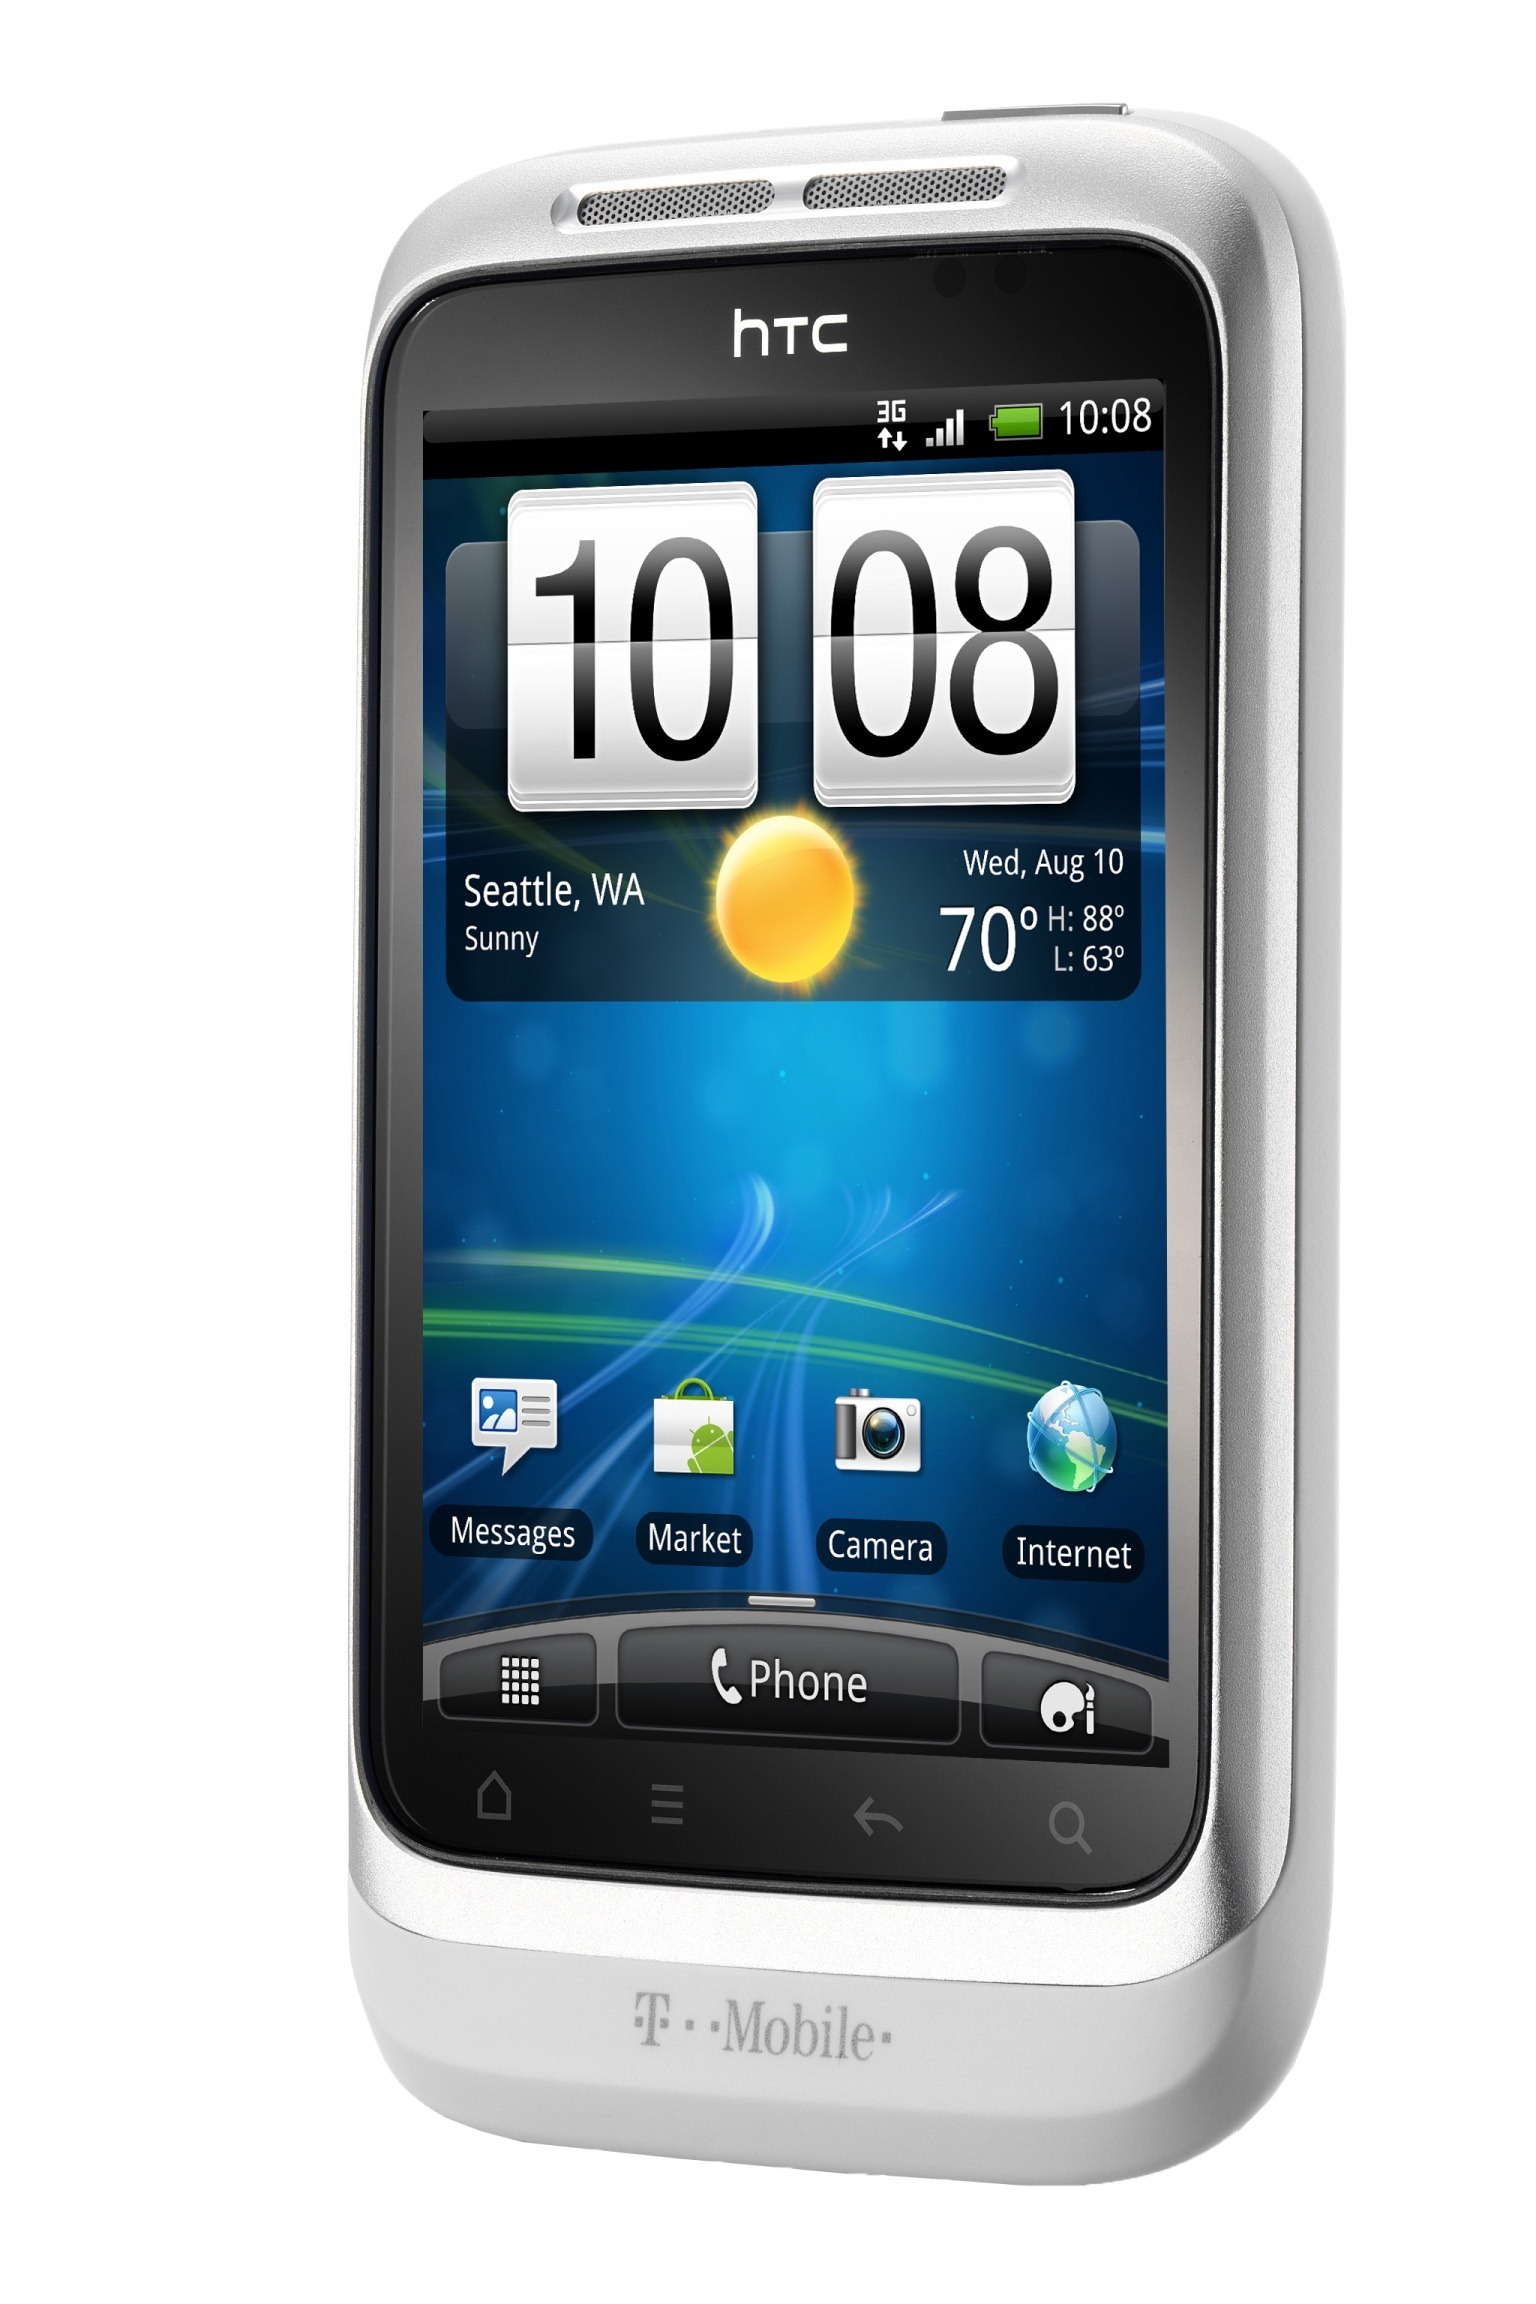 Virgin Mobile HTC Wildfire S in trendy Silver and White